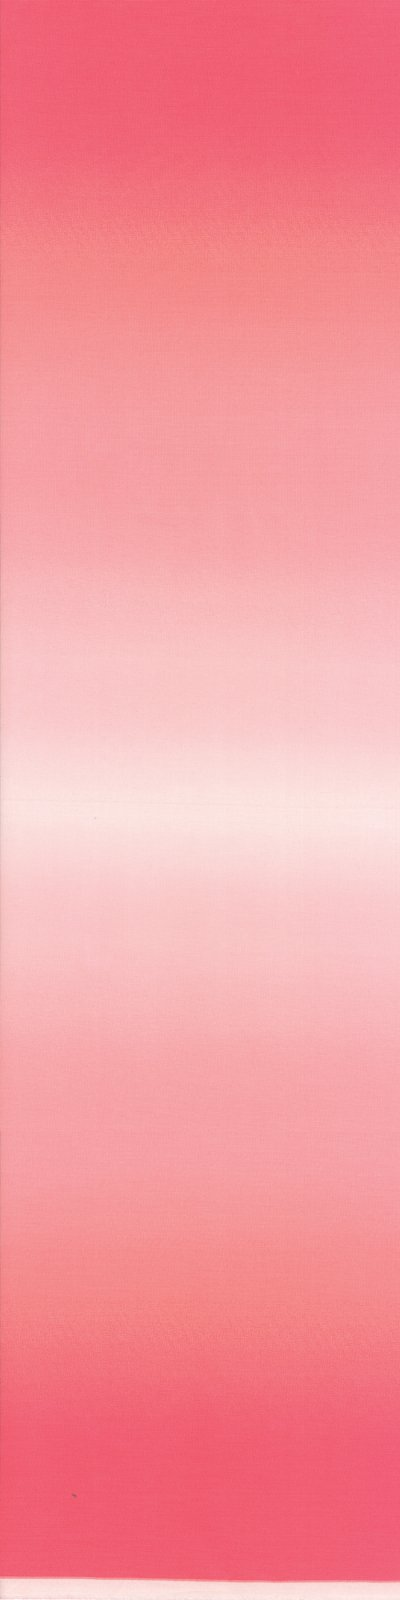 Ombre 10800-226 Popsicle Pink